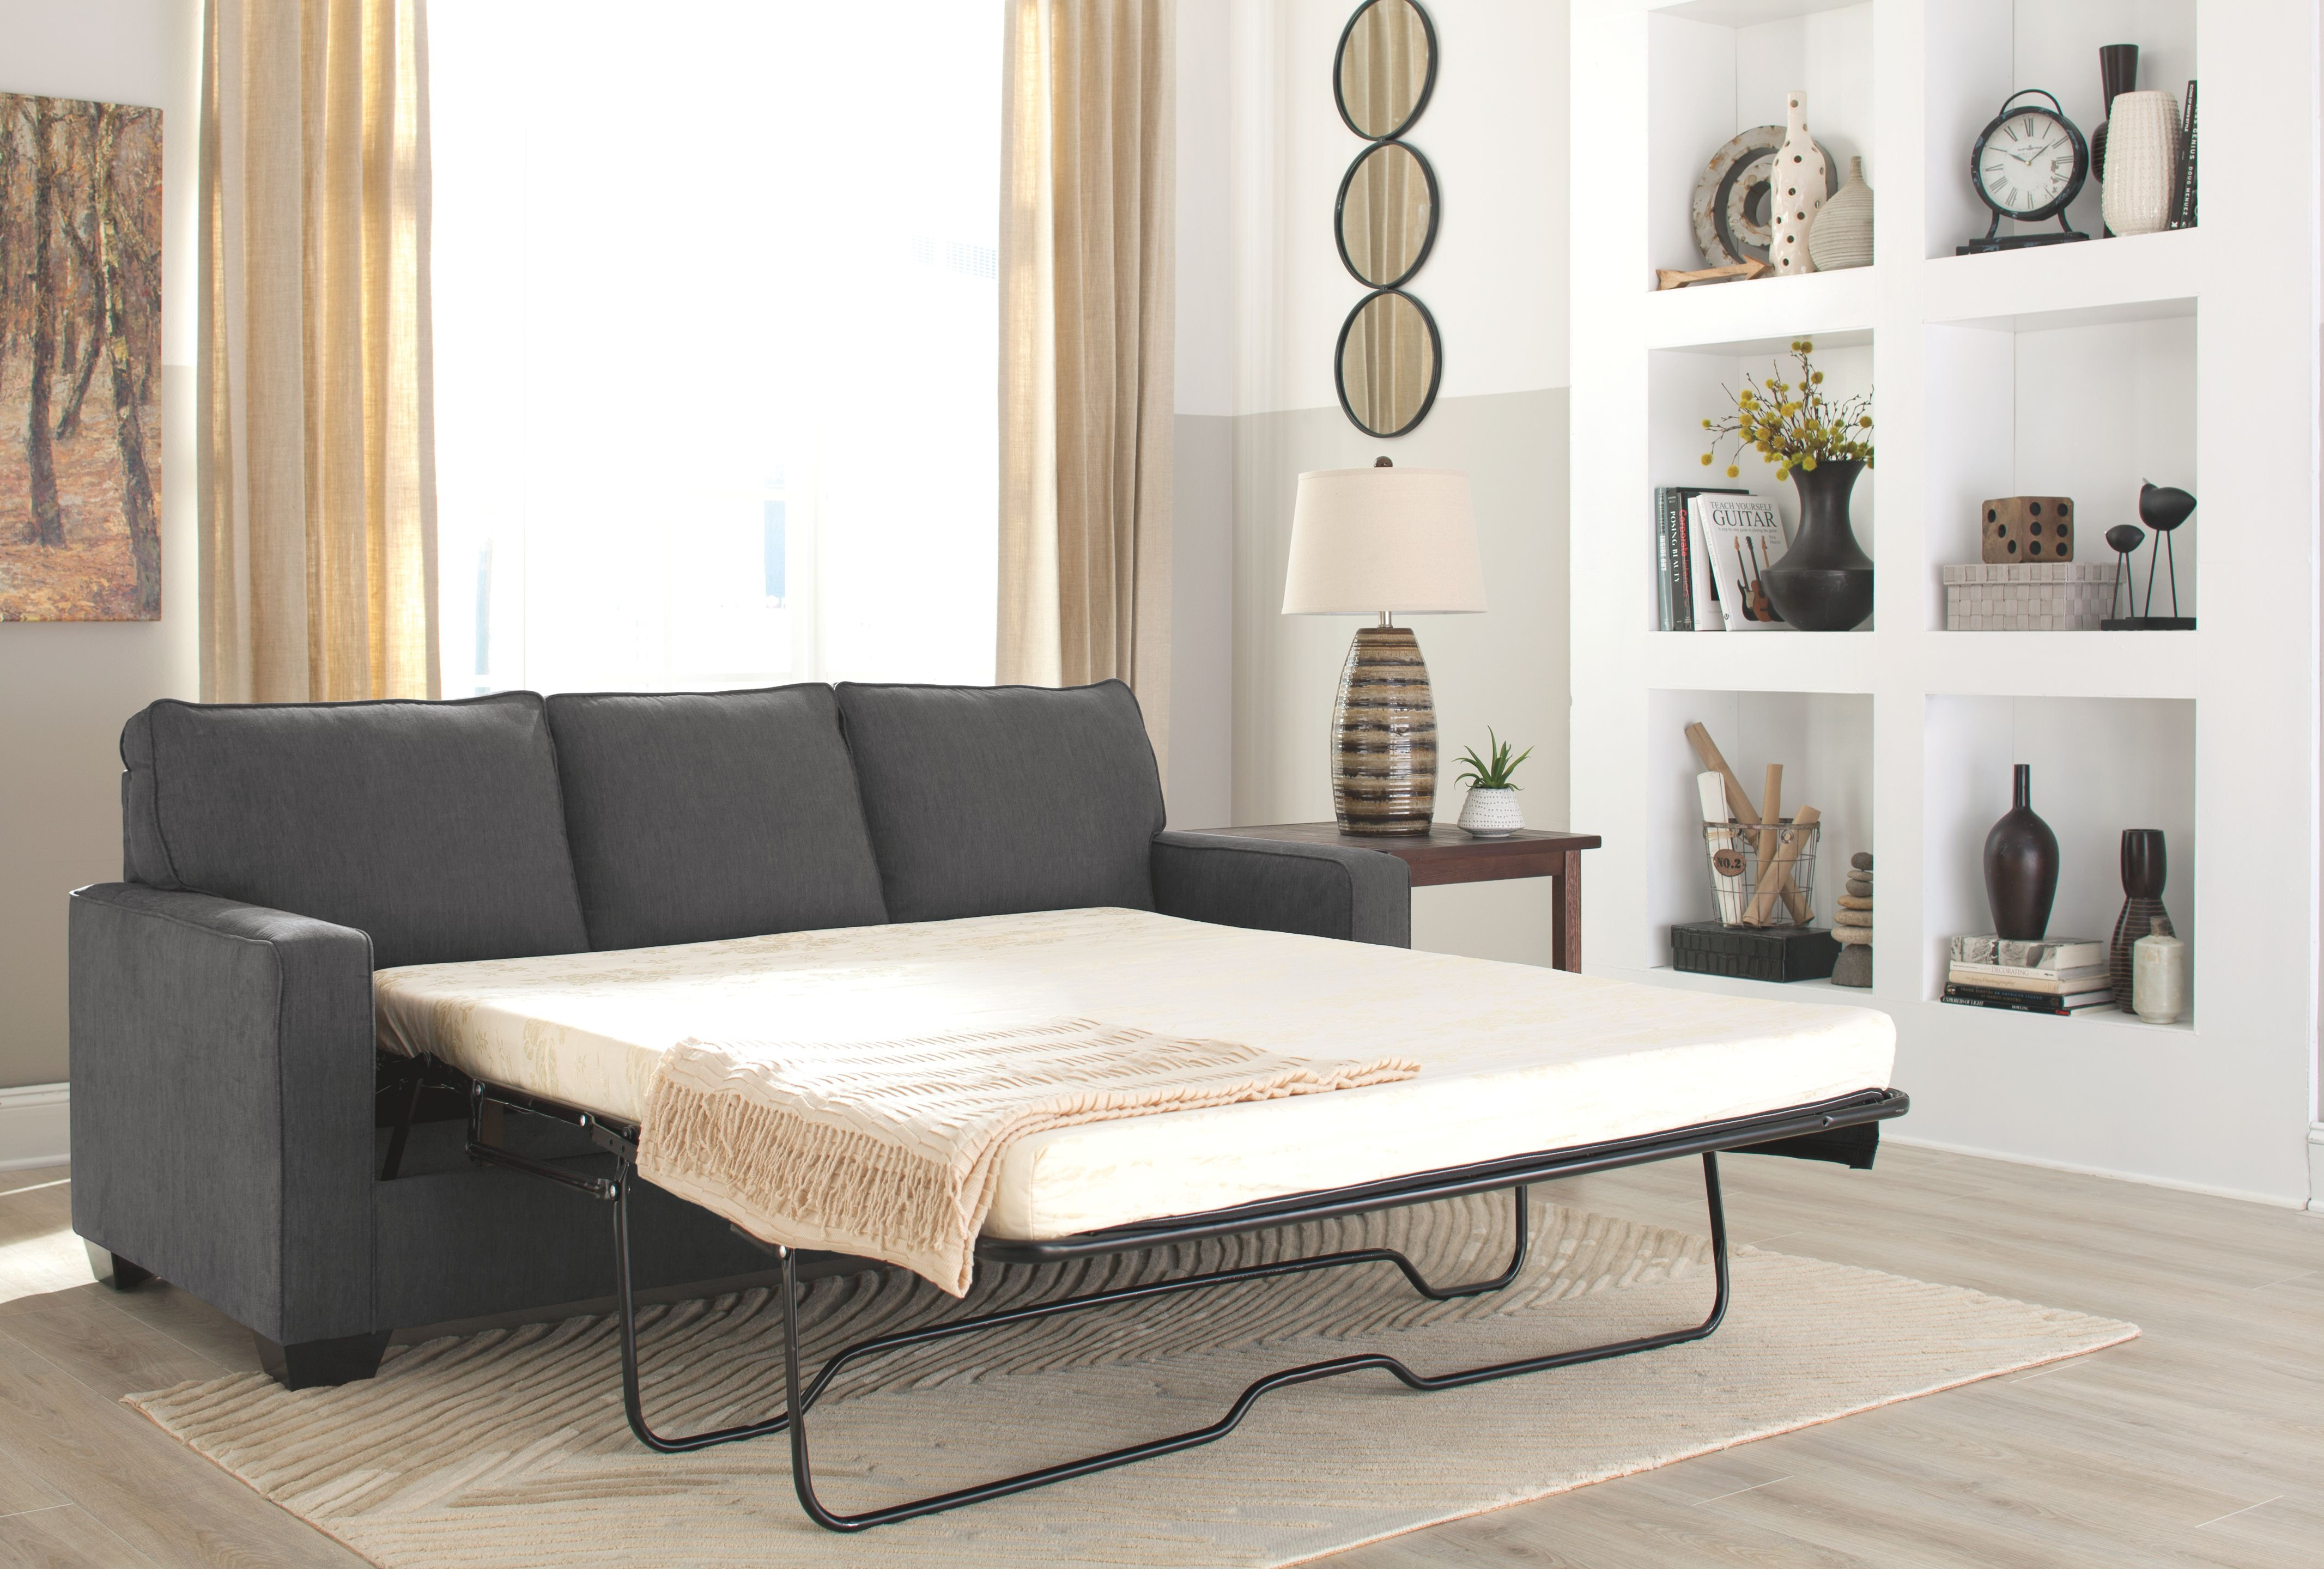 Signature Design by Ashley Living Room Queen Sofa Sleeper